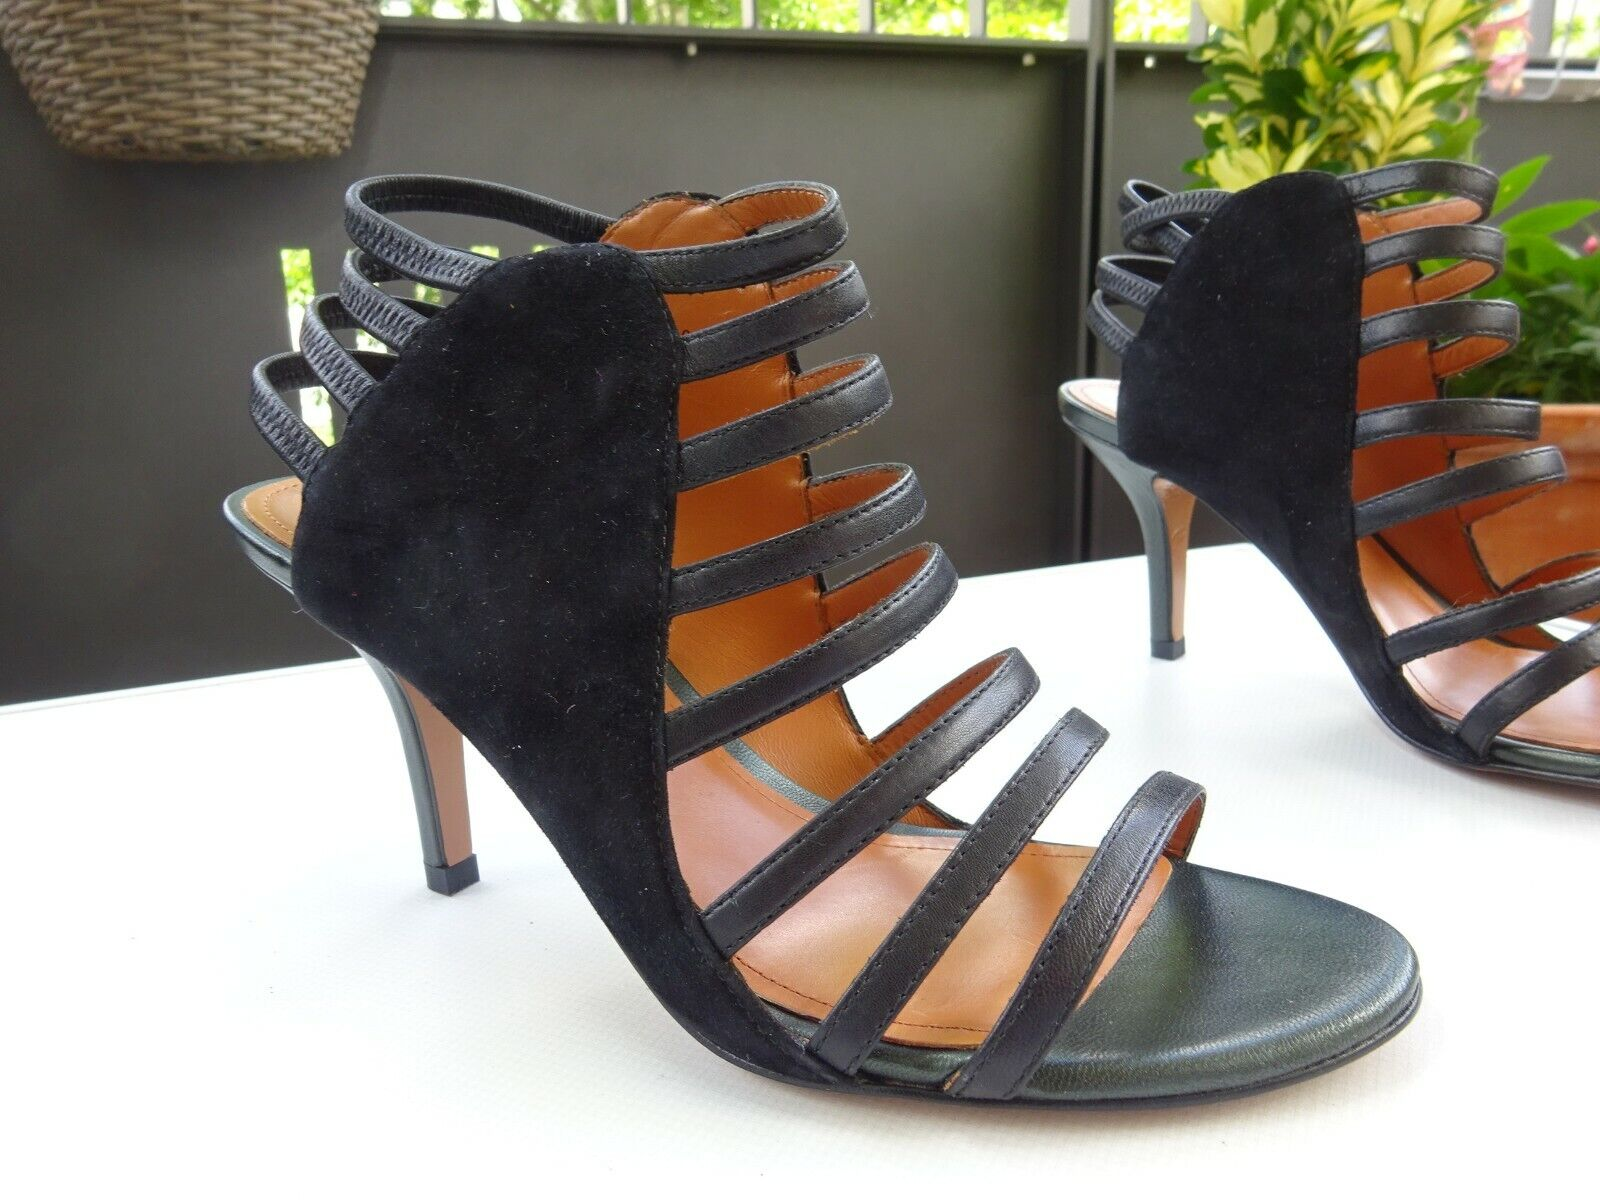 & OTHER STORIES Femmes LUXE Chaussures sandales cuir daim noir taille 38 Neuw